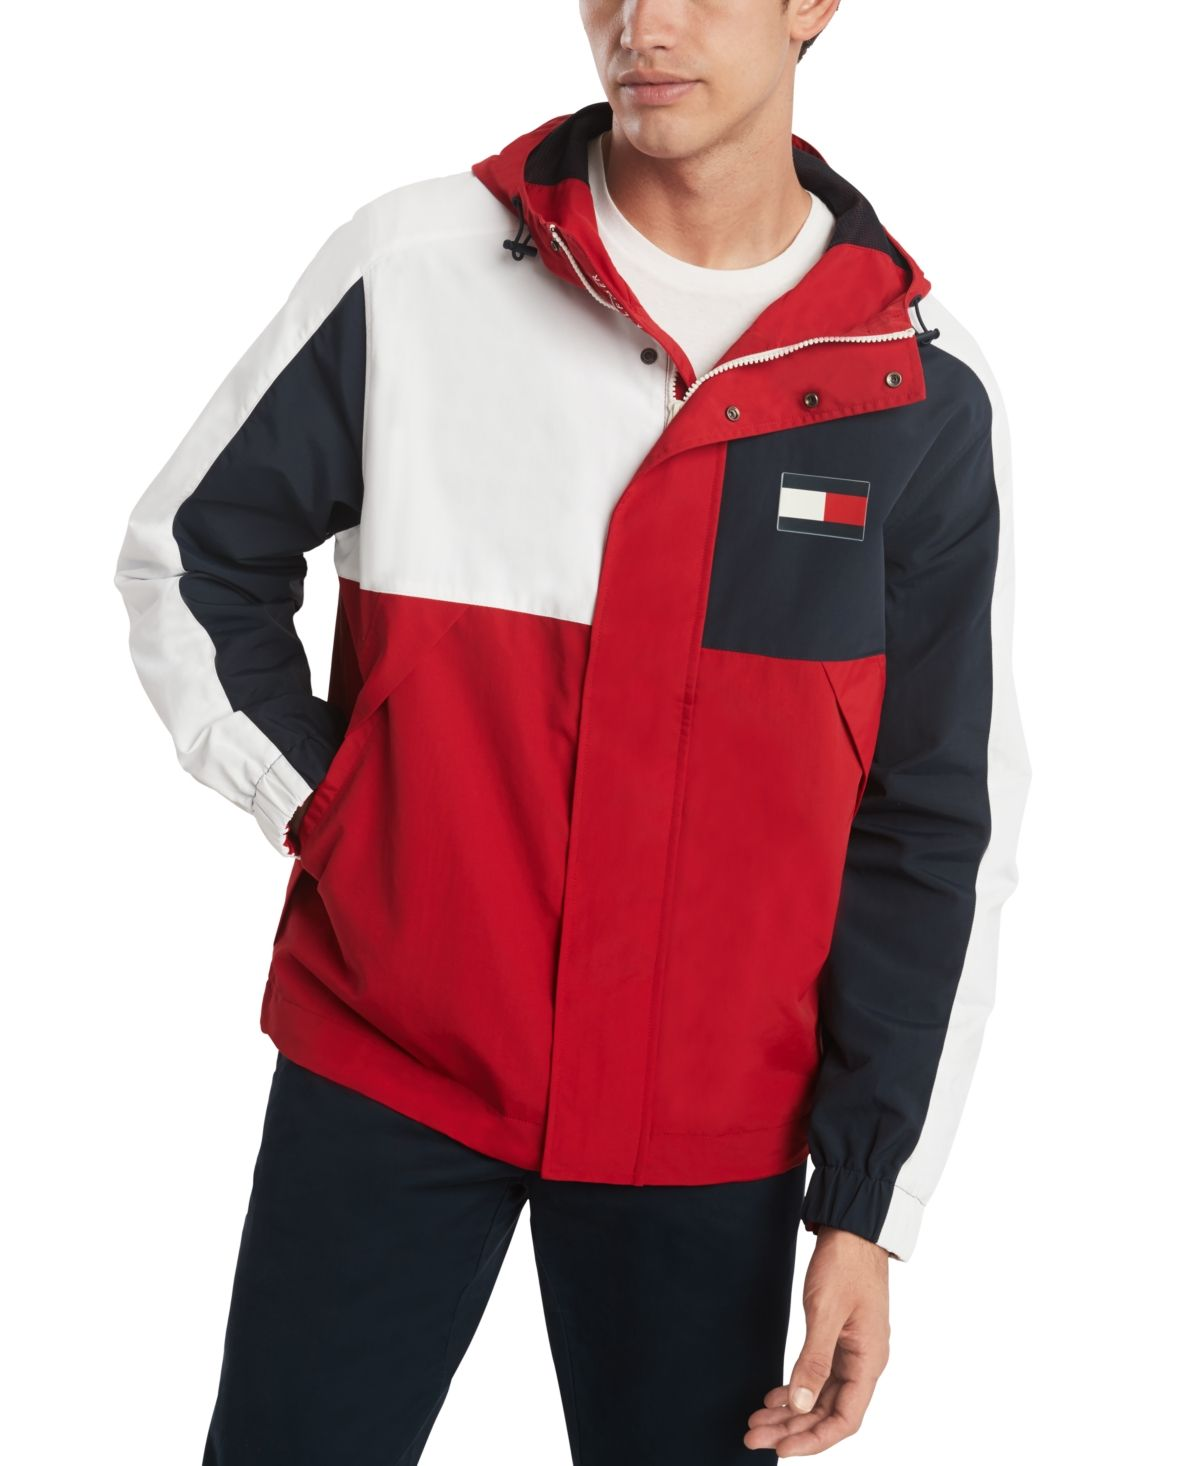 Tommy Hilfiger Men S Dover Colorblocked Water Resistant Hooded Yacht Jacket Apple Red Tommy Hilfiger Man Tommy Hilfiger Jacket Tops [ 1466 x 1200 Pixel ]